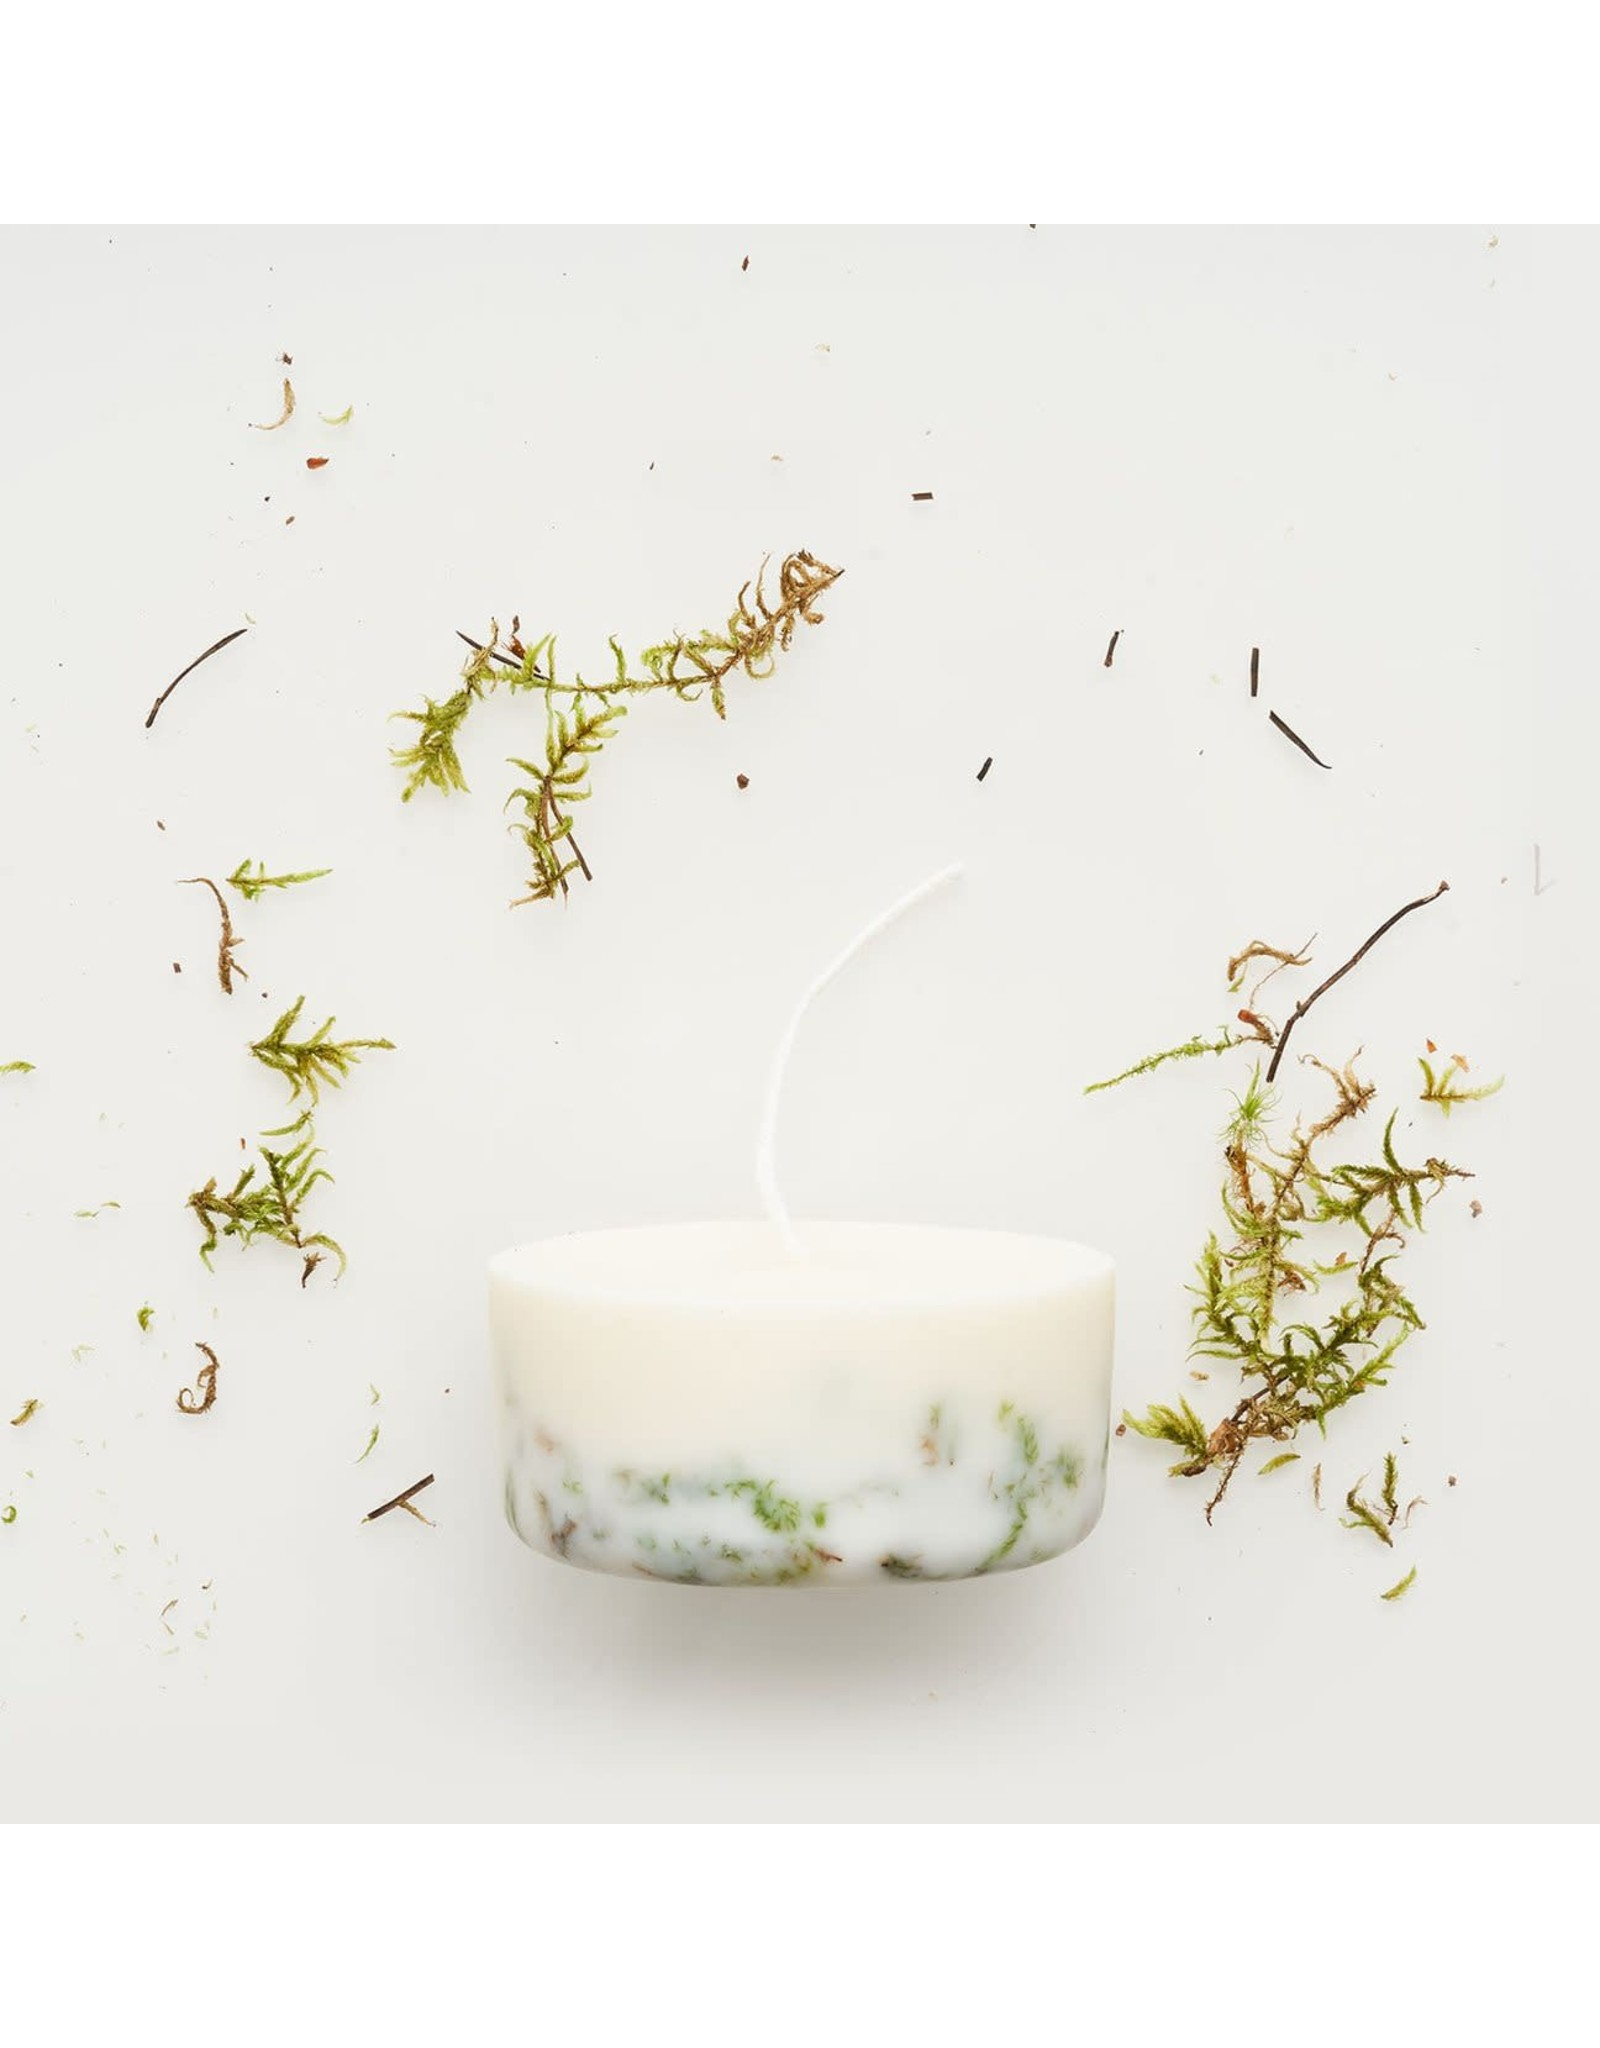 Munio Candela Candle - Moss - Natural Soy Wax - 220ml - Dia 8cm x H 4cm - Burn Time 15h